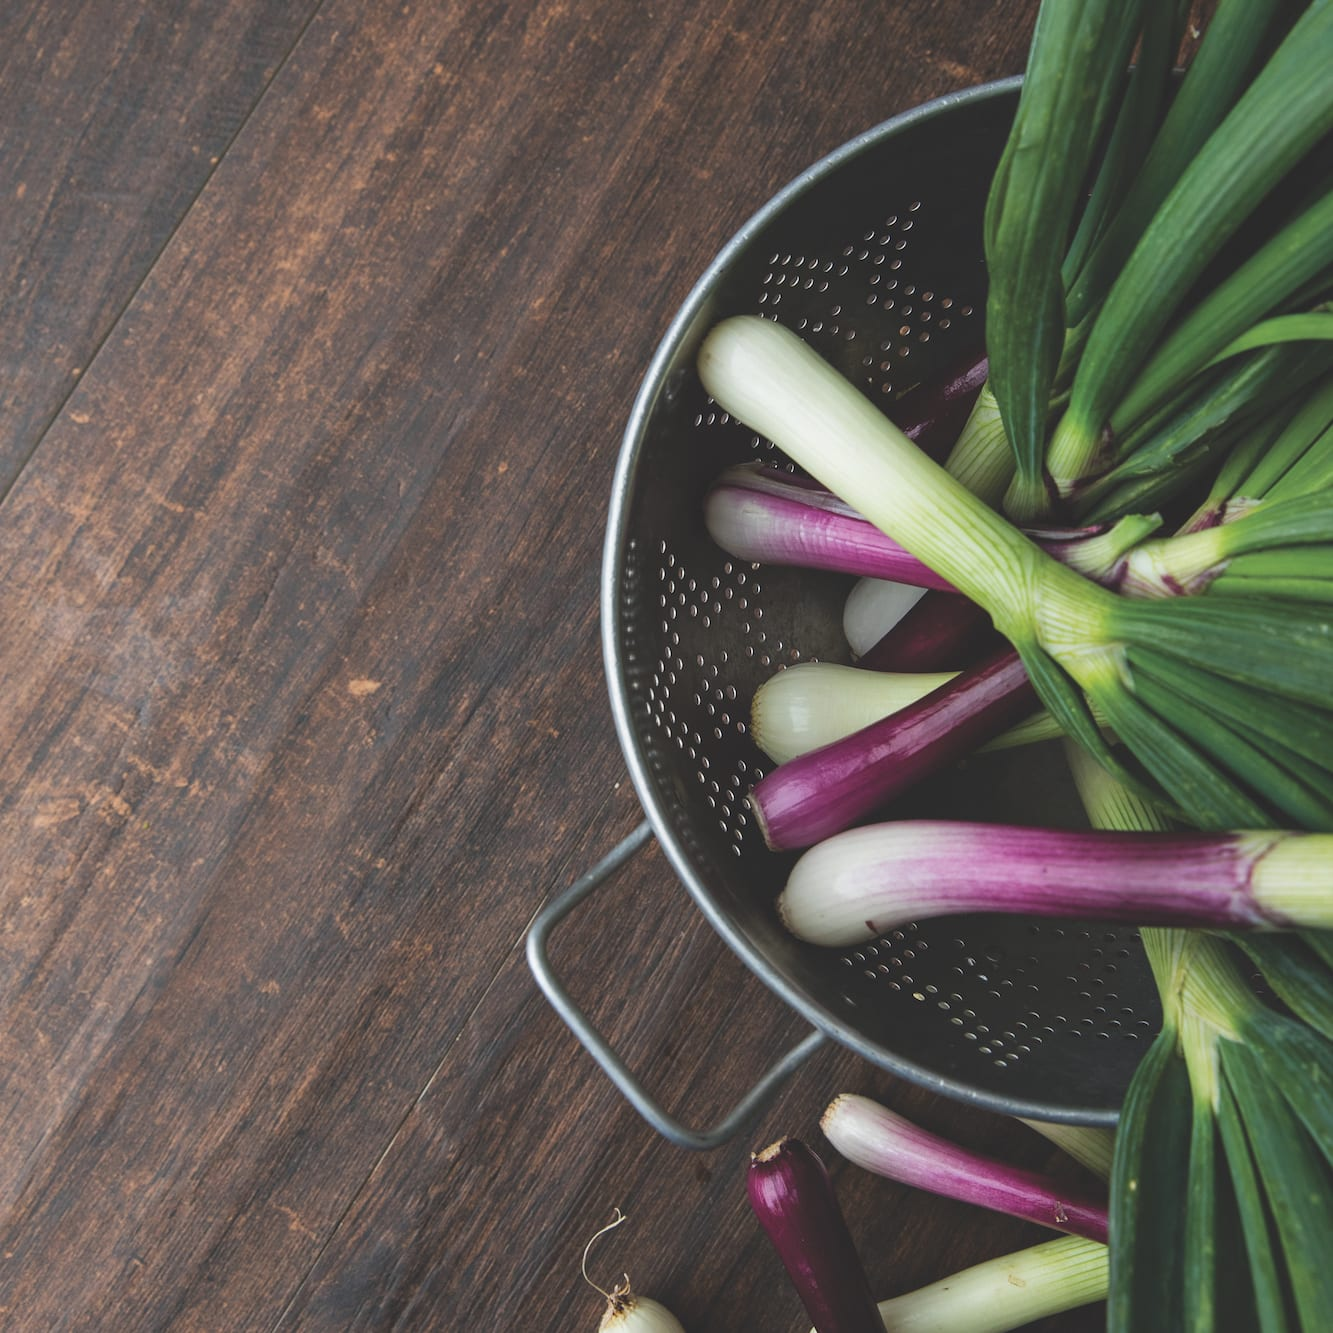 Easy Does It: Spring Onions